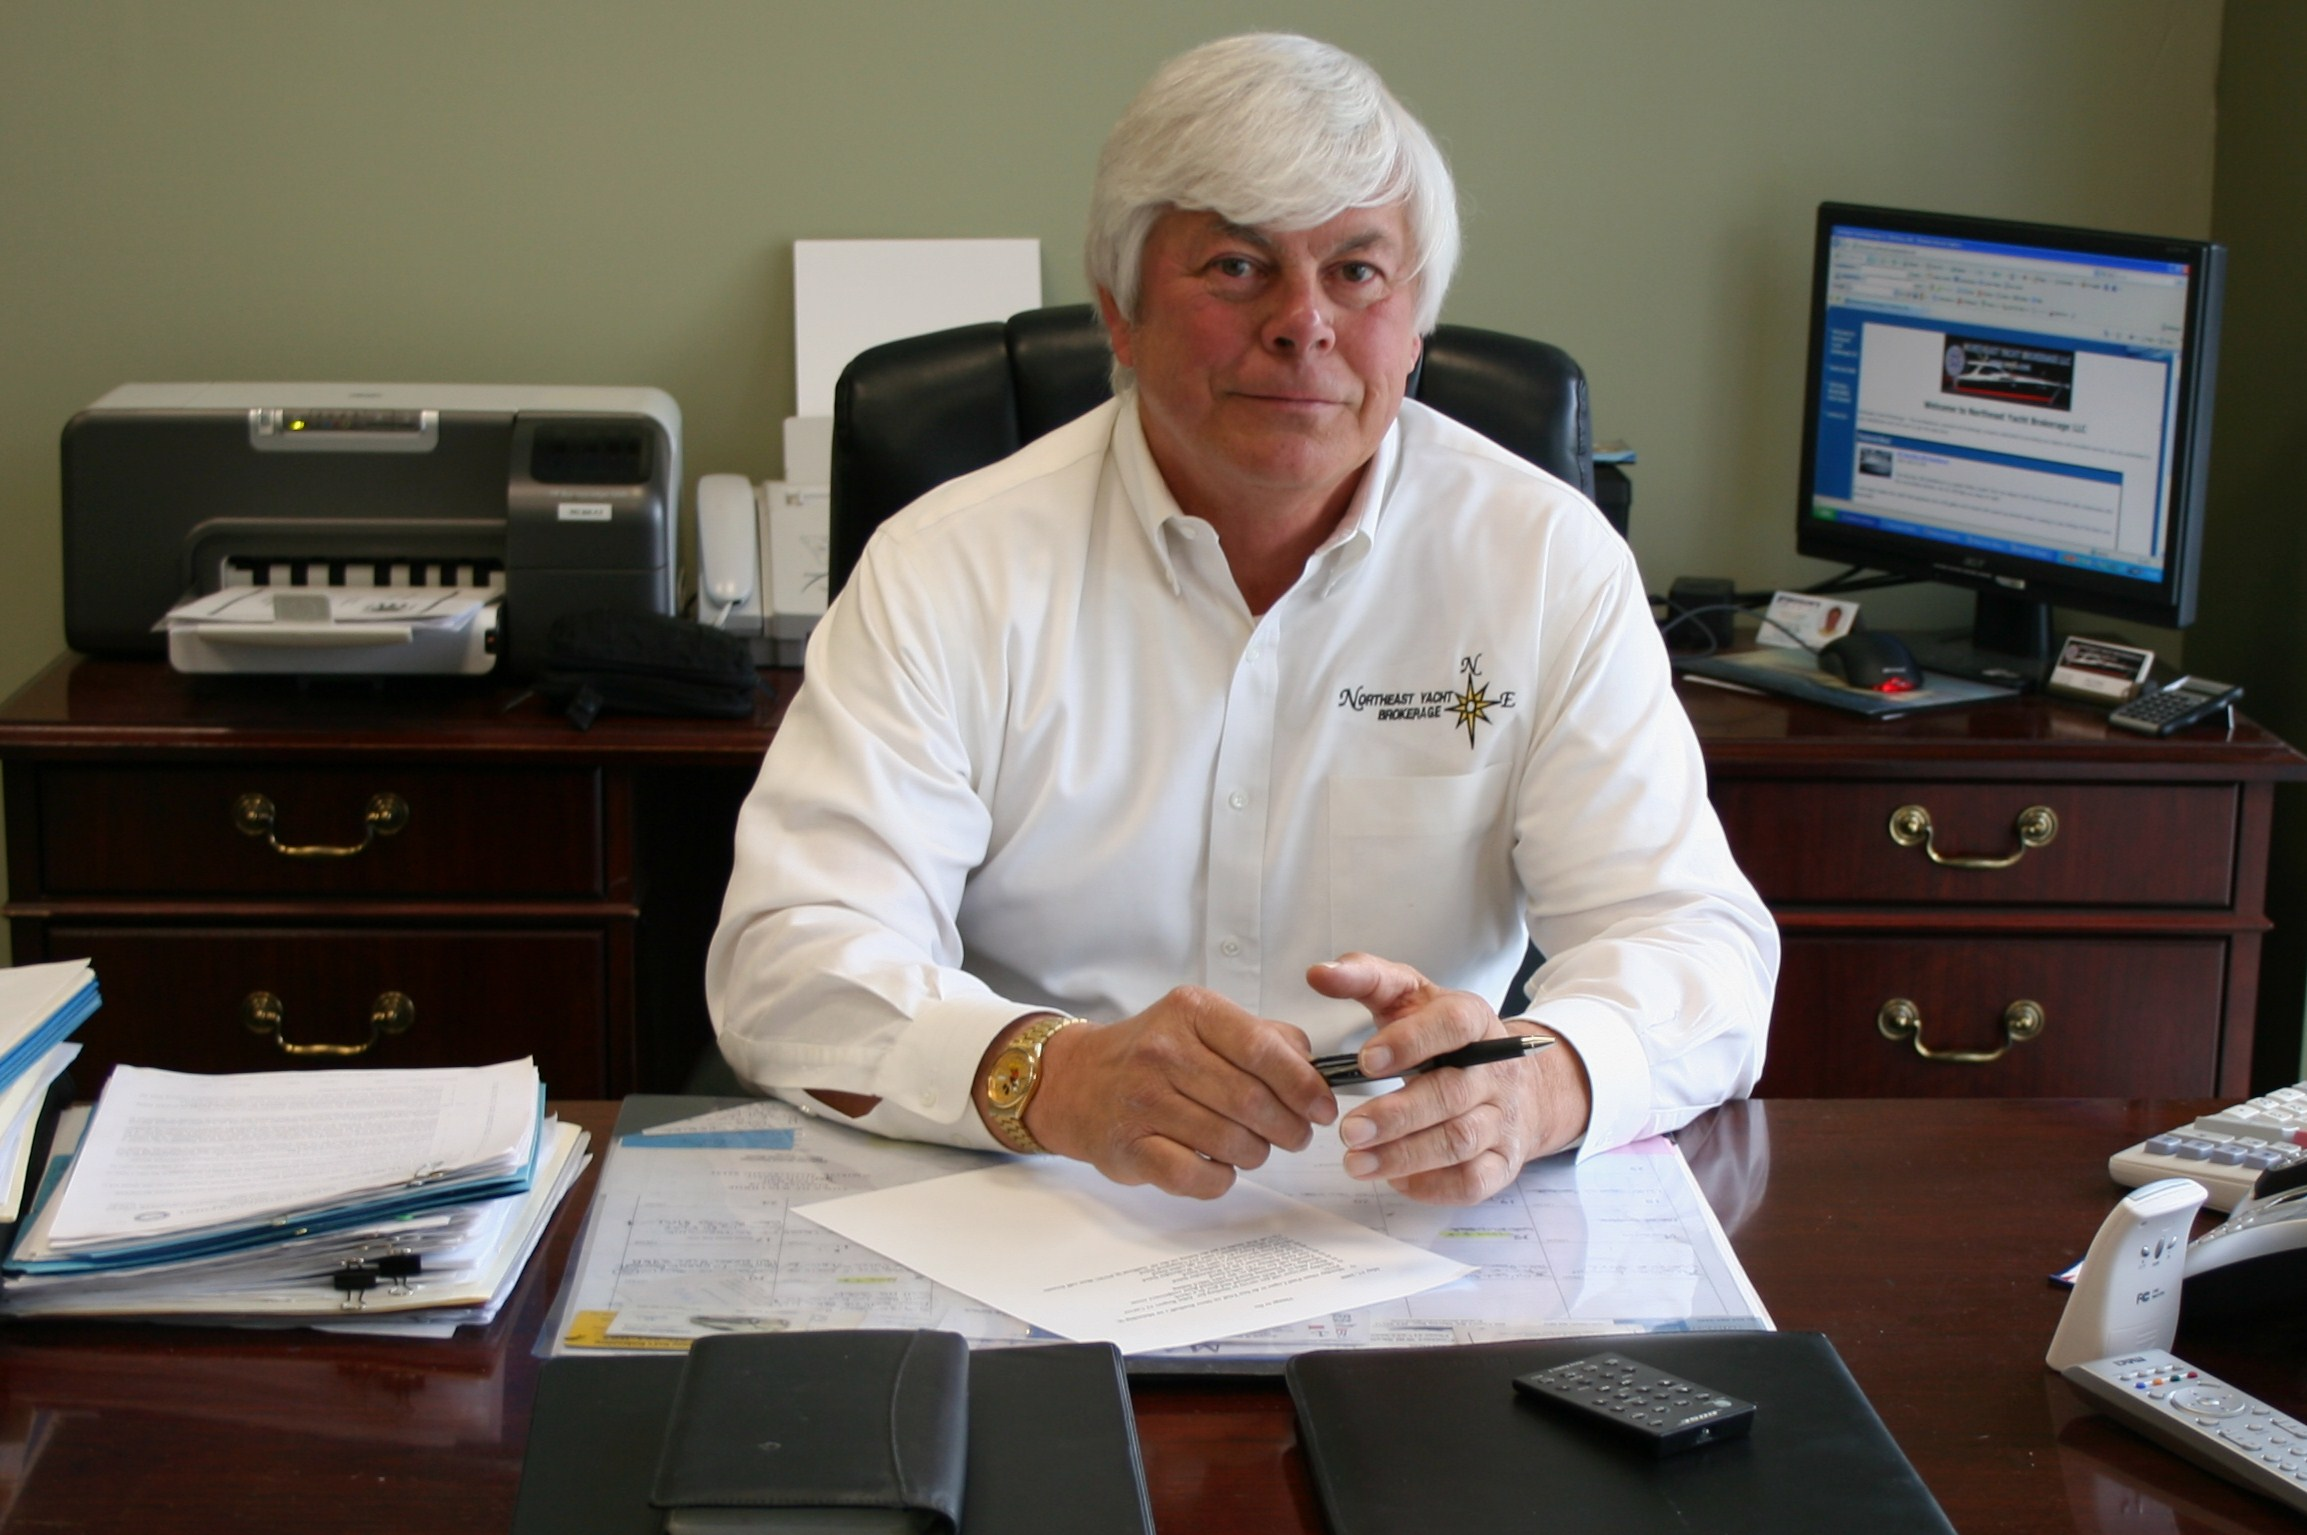 John Crosby - Northeast Yacht Brokerage, Winthrop, MA